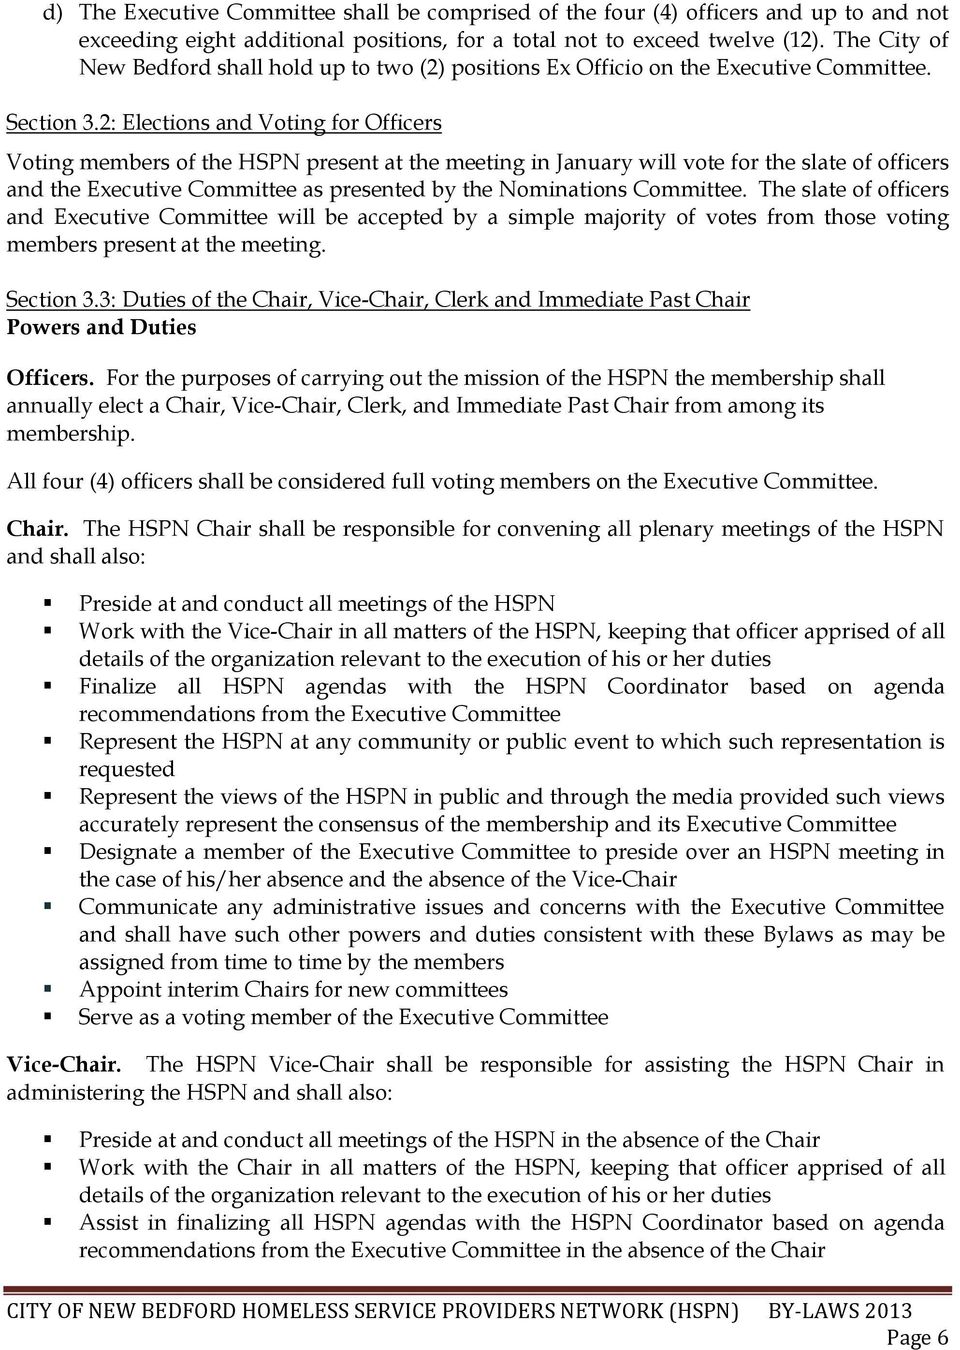 2: Elections and Voting for Officers Voting members of the HSPN present at the meeting in January will vote for the slate of officers and the Executive Committee as presented by the Nominations